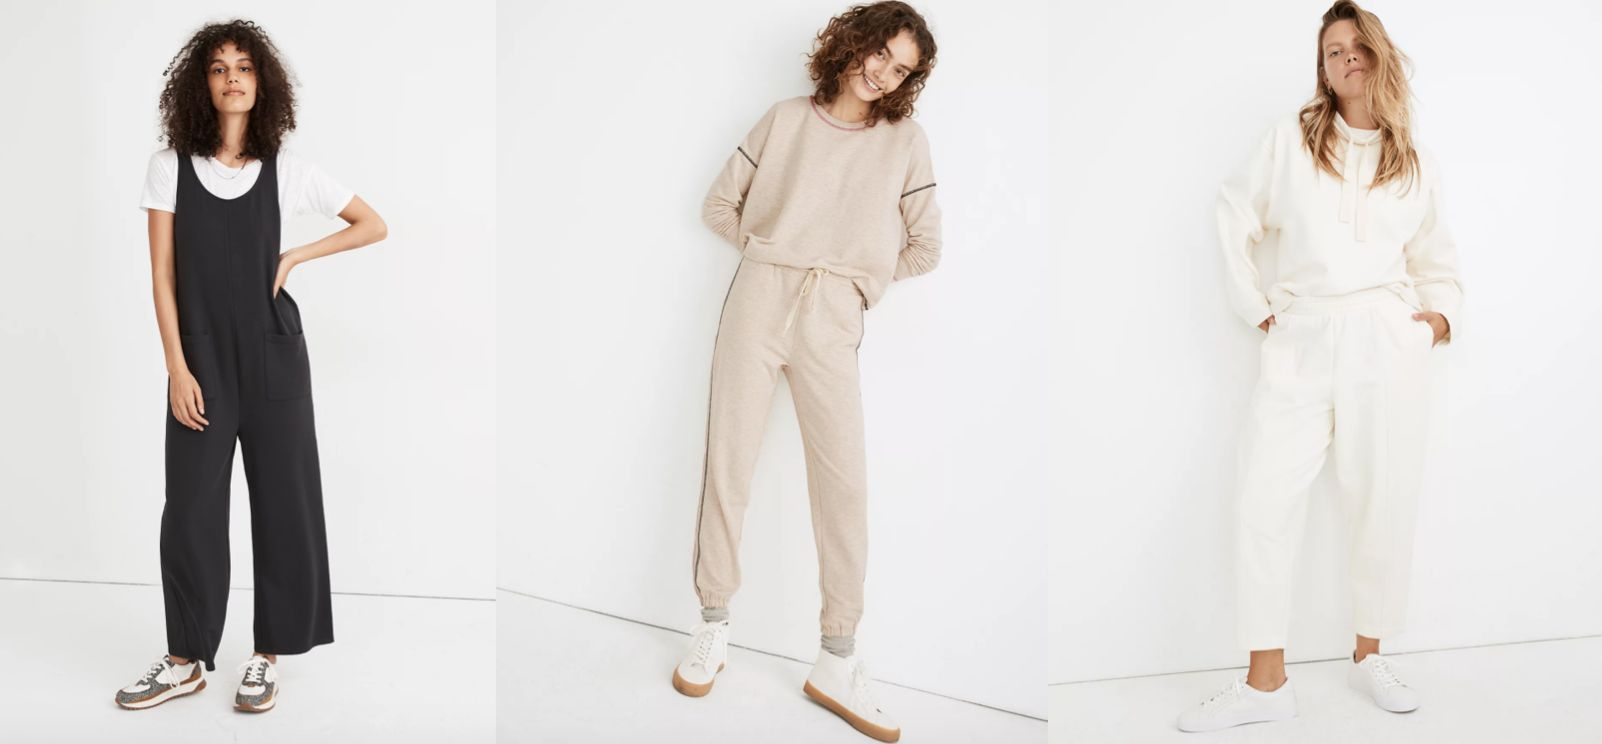 Madewell's First-Ever Athleisure Collection Is Here